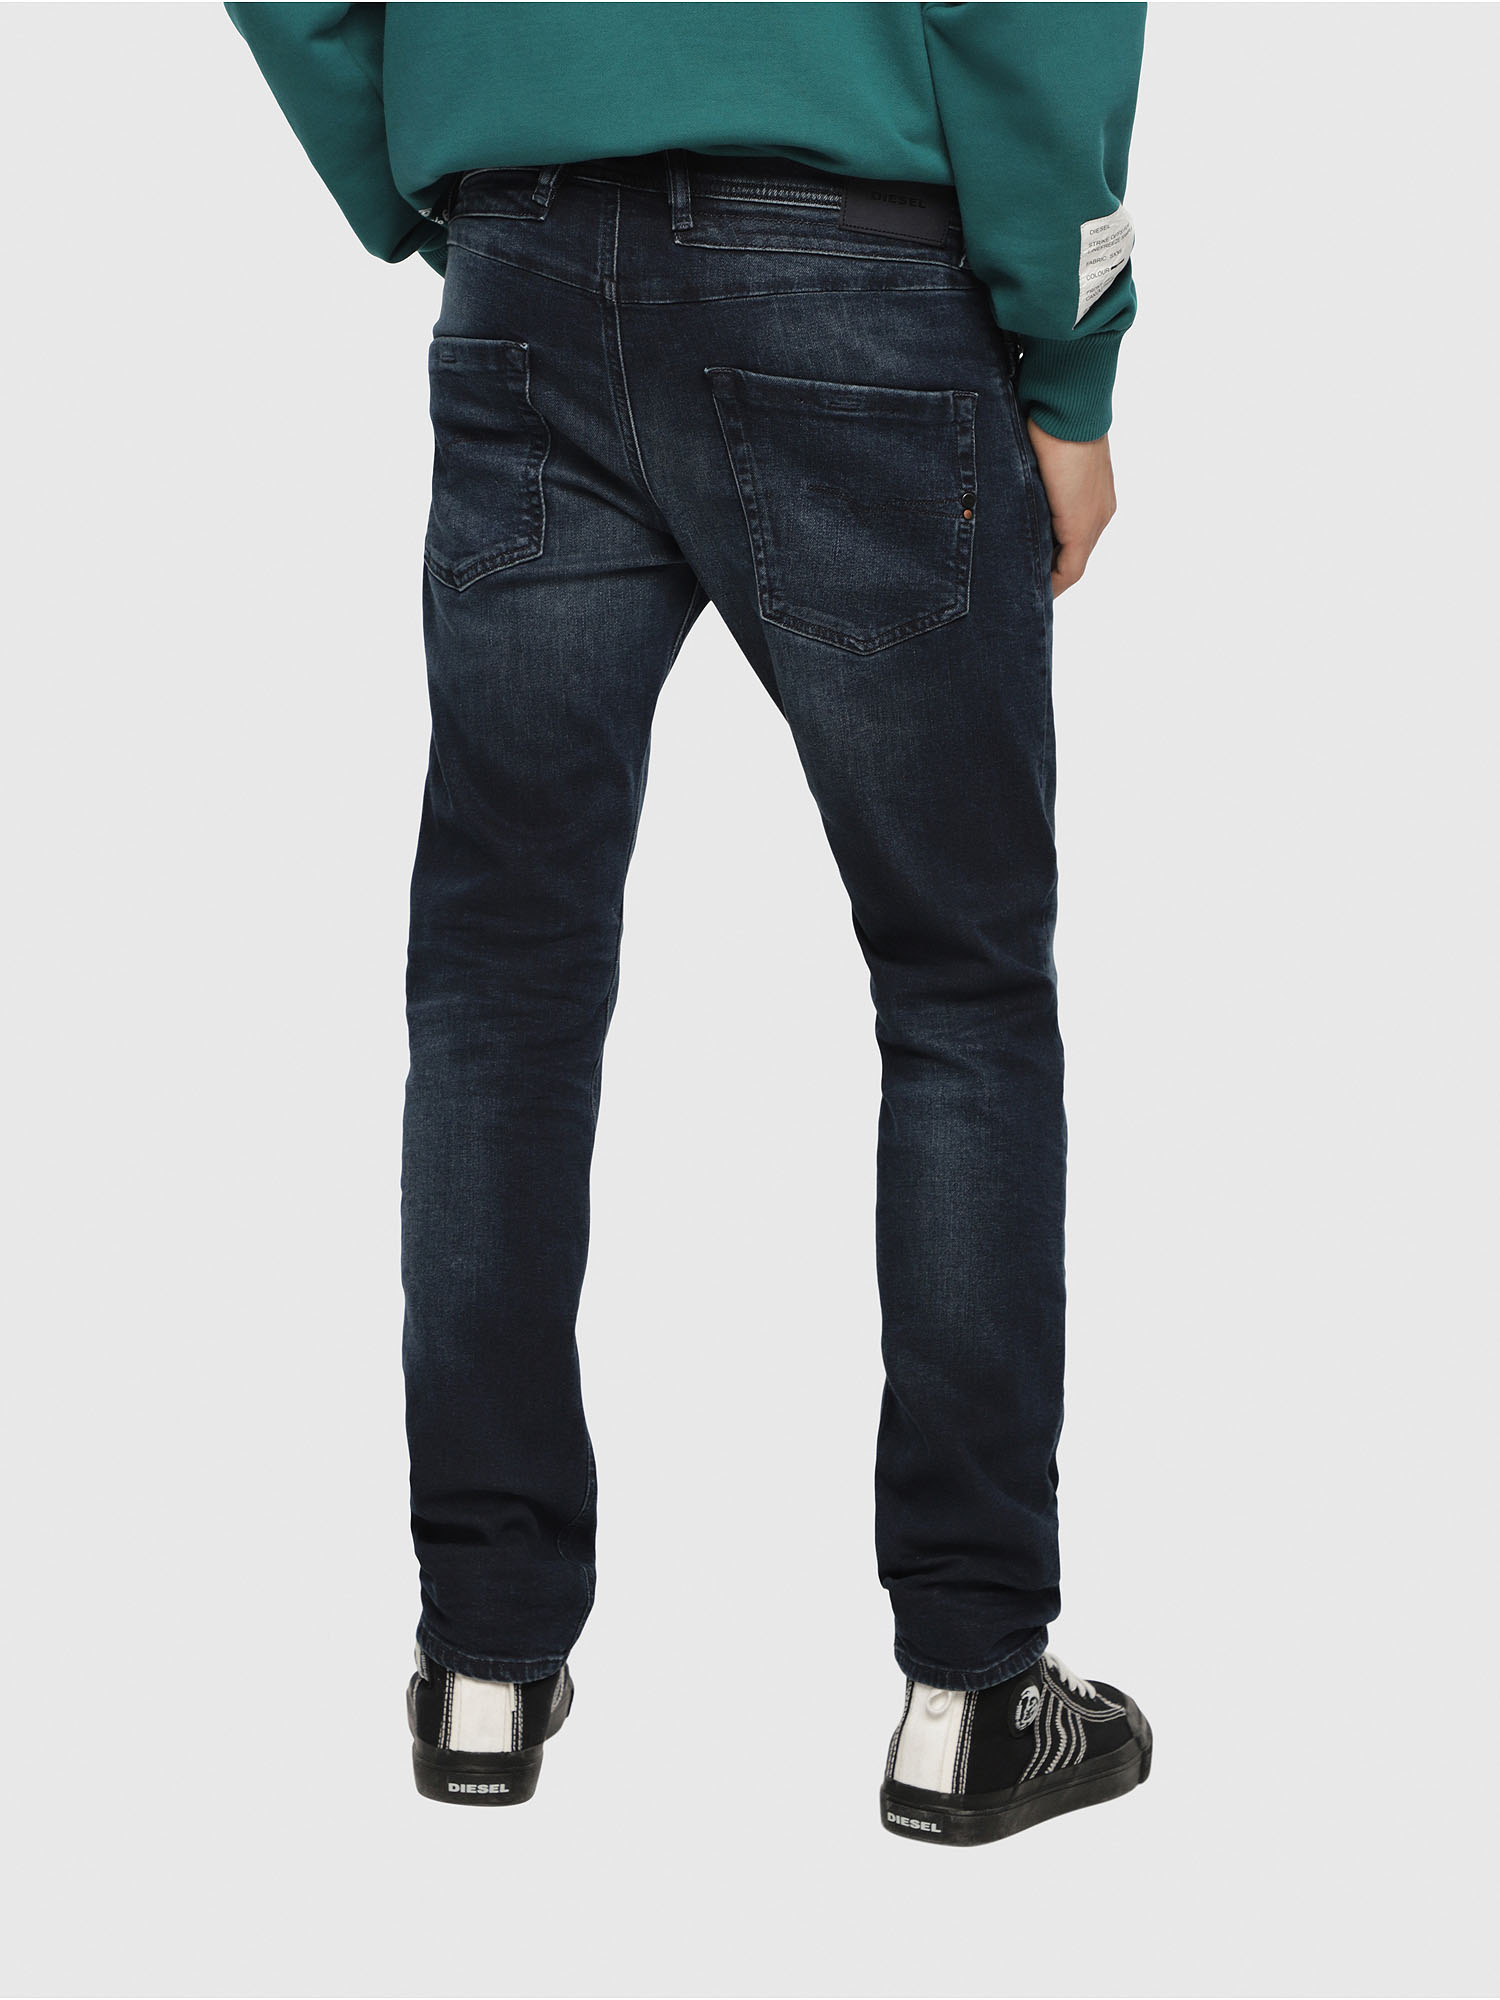 Diesel - Belther 087AS,  - Jeans - Image 2